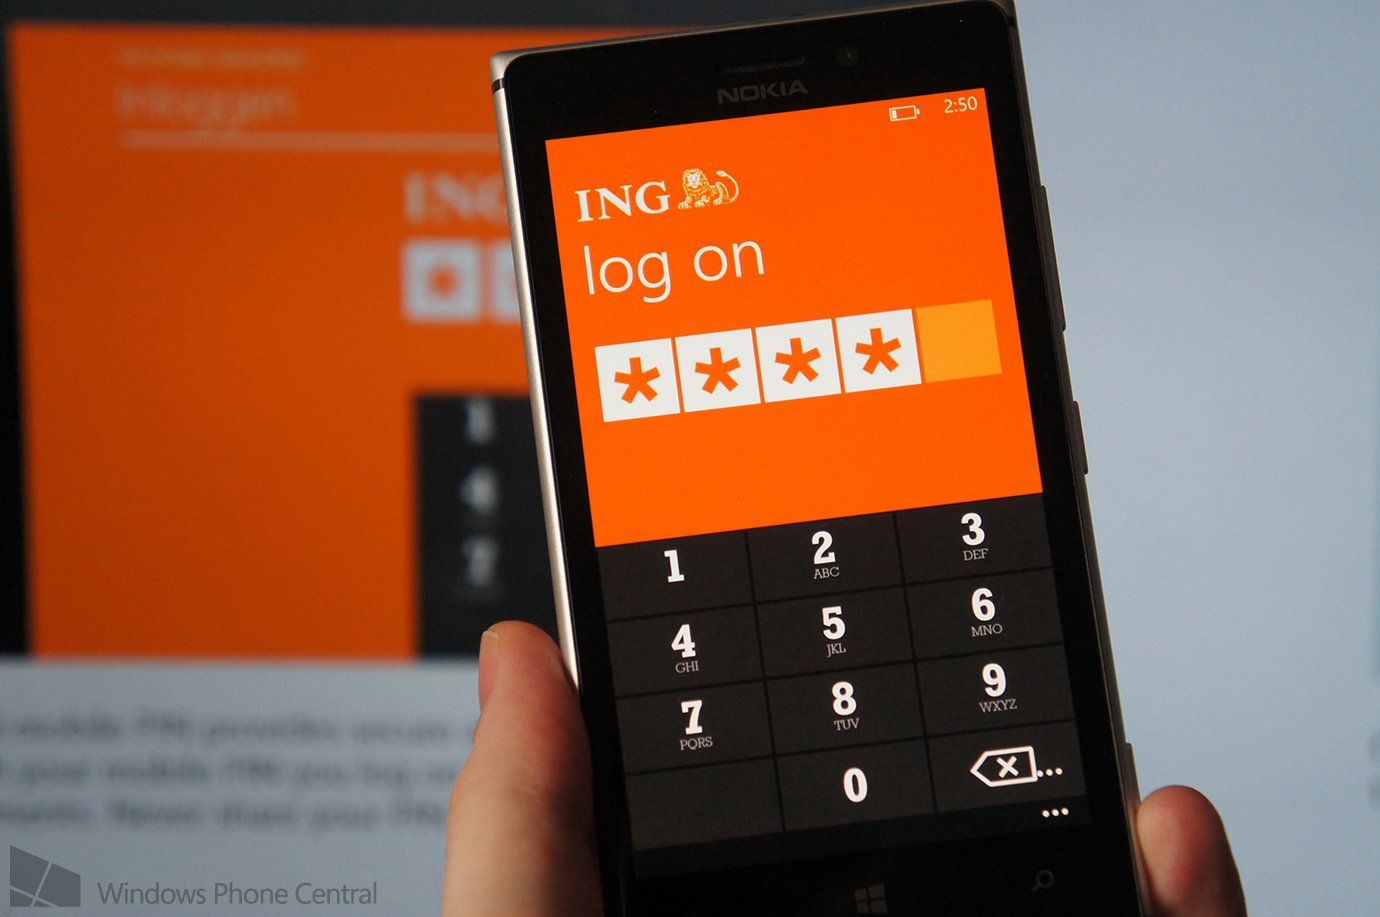 ING Launches Banking Apps For Windows 8 And Windows Phone